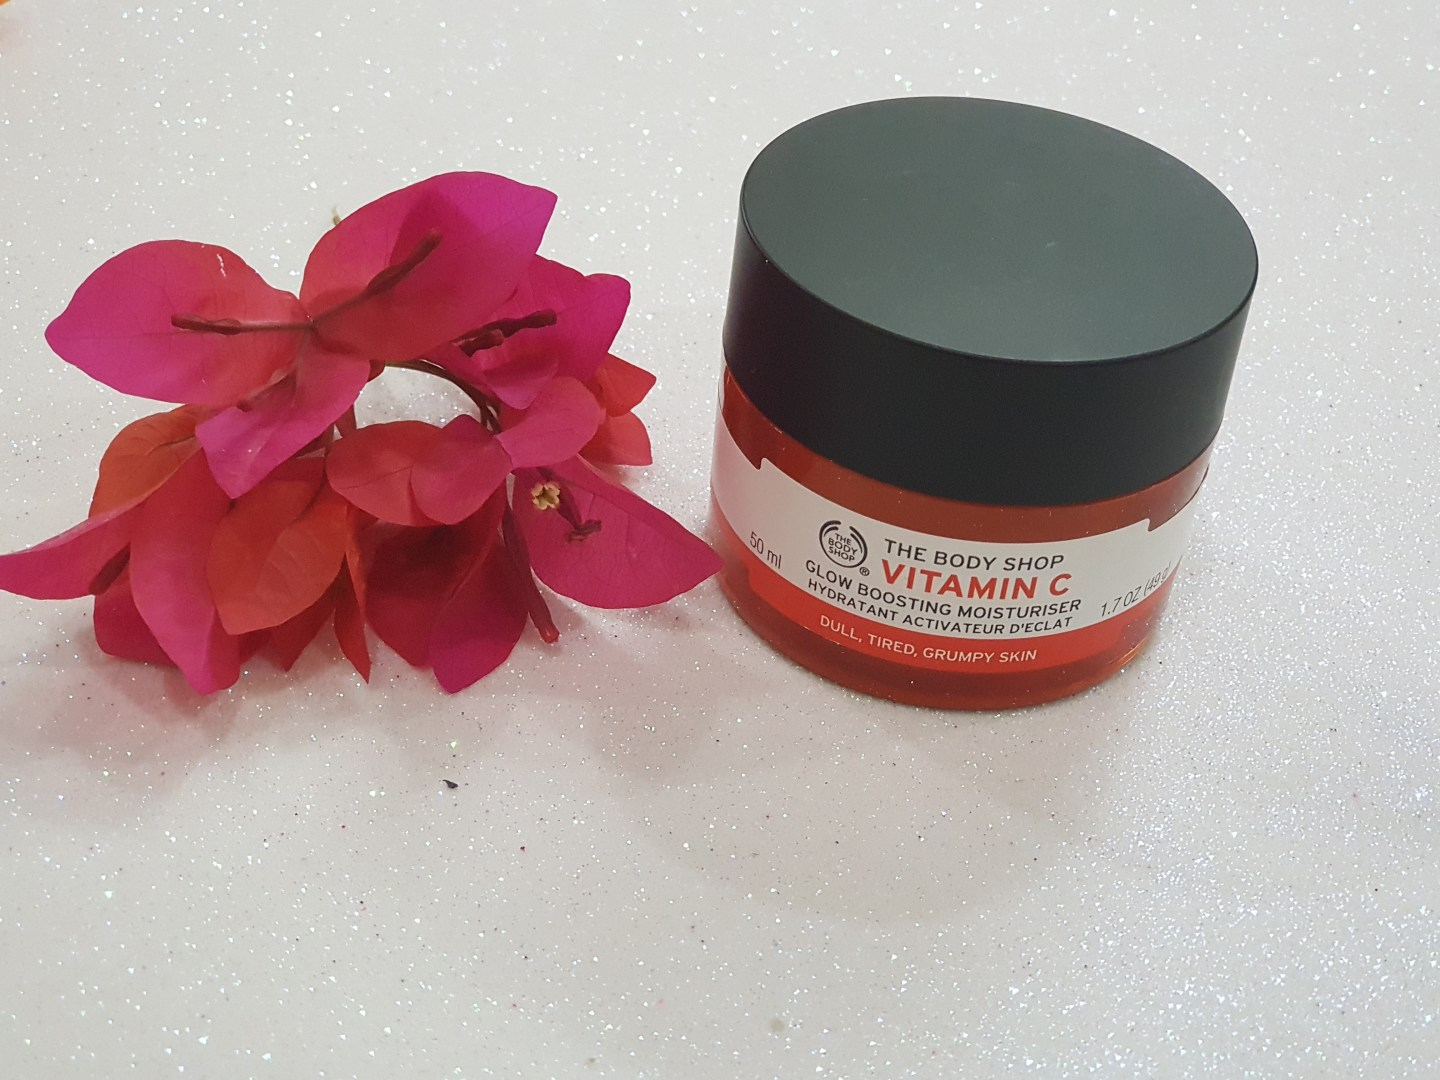 The Body Shop Vitamin C Daily Glow Face Polish and Moisturizer Review